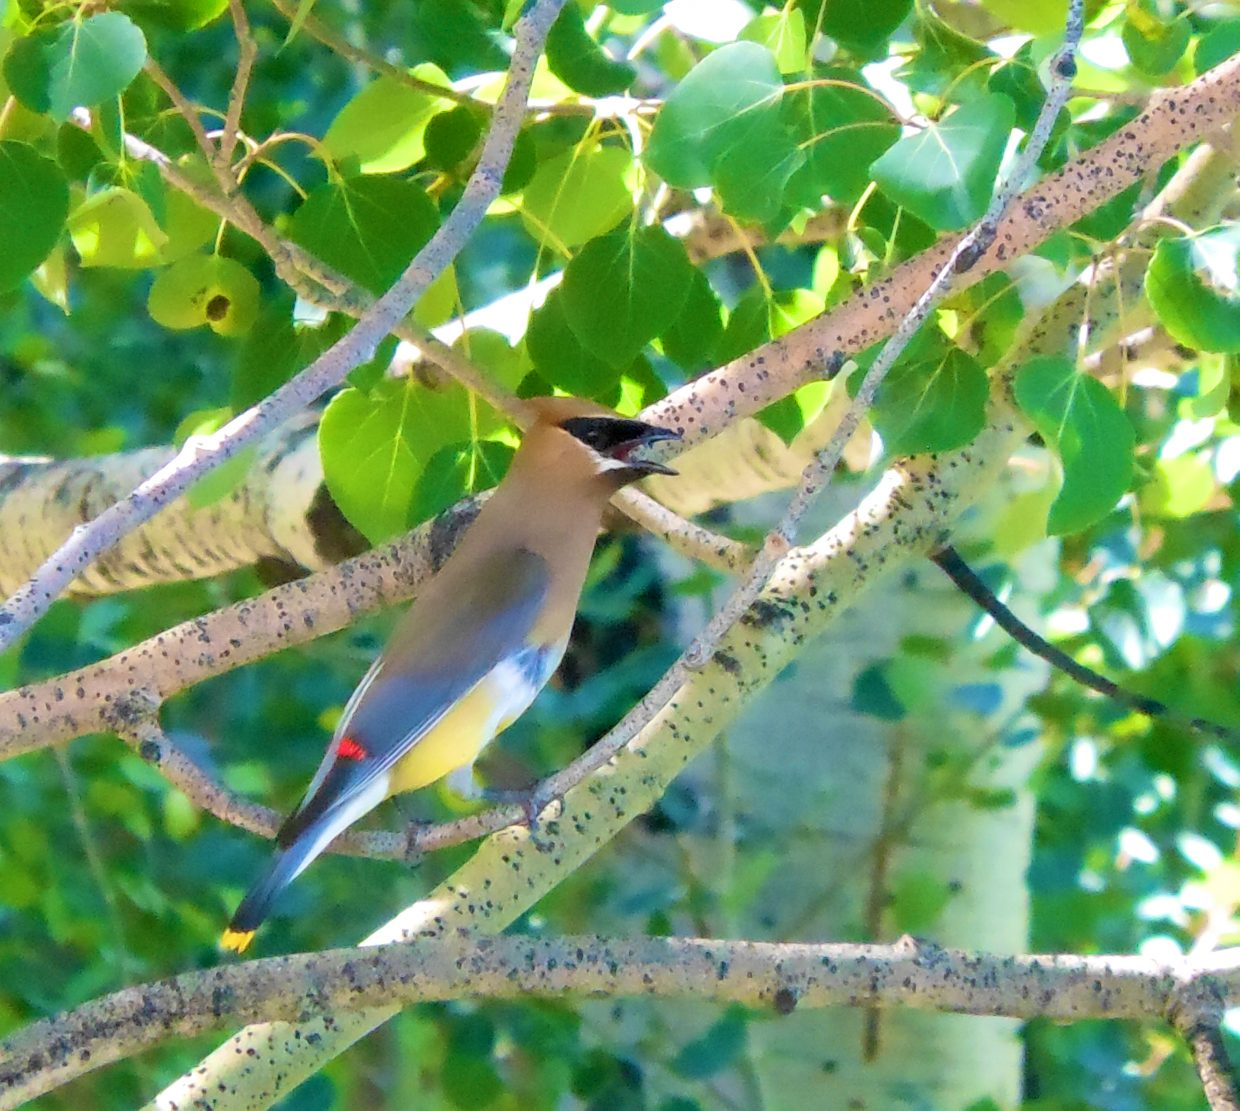 Cedar waxwing at Rollingstone Ranch Golf Course. Submitted by: Anne Lauinger